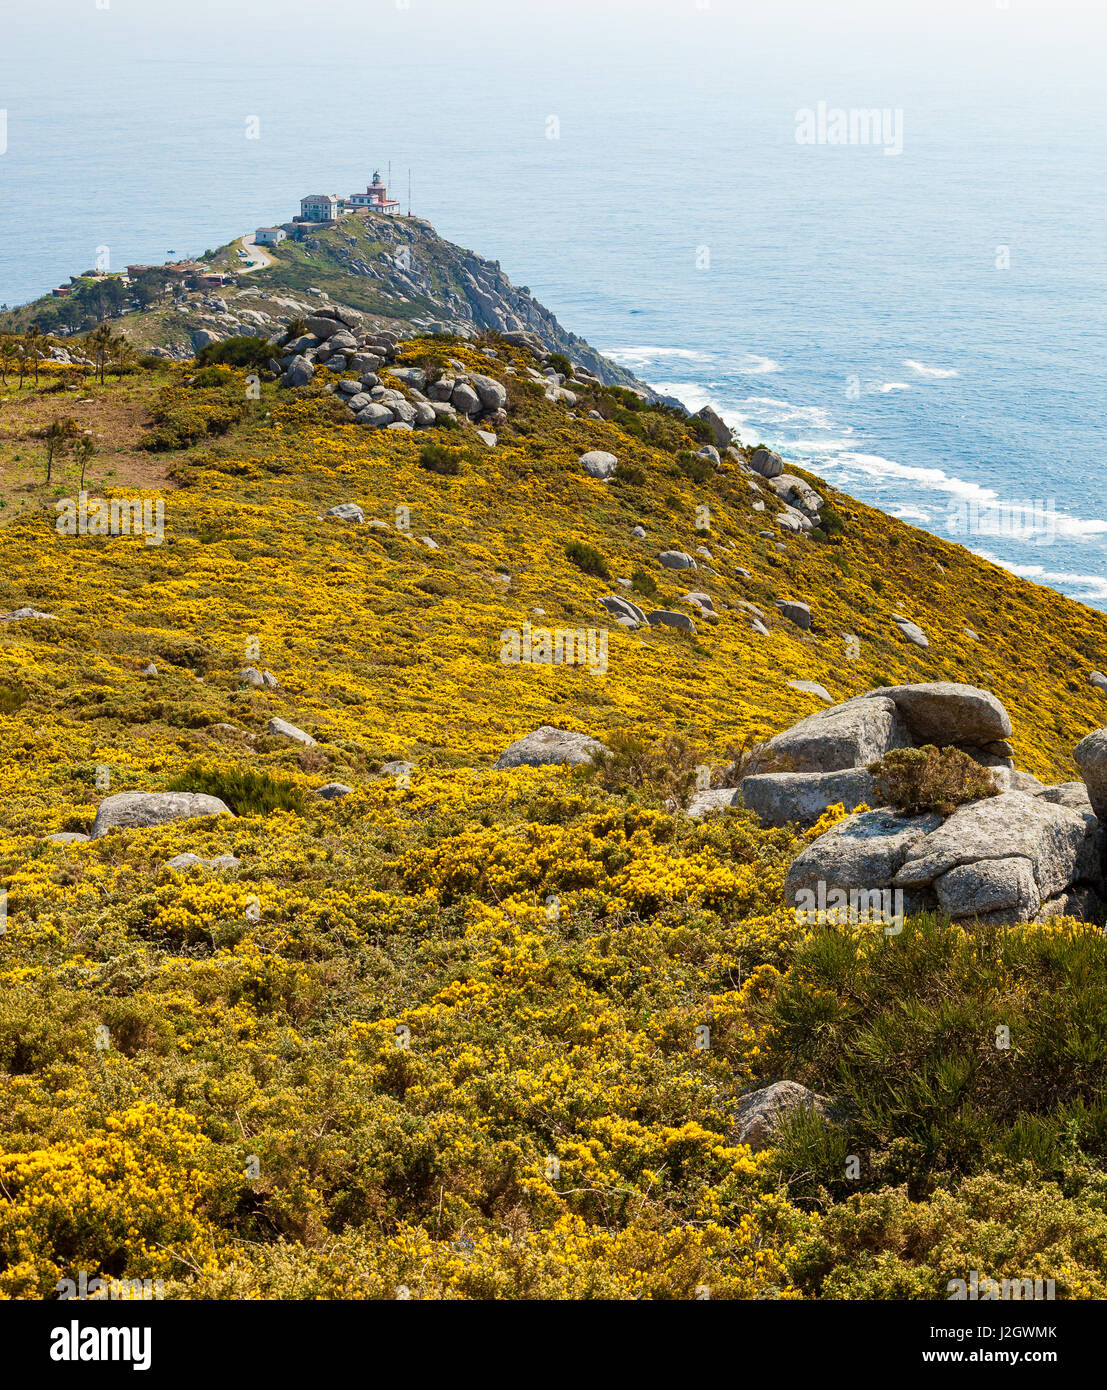 View of Cape Finisterre, La Coruna, Spain. The most western point in Europe and end of the pilgrim route to Santiago. - Stock Image